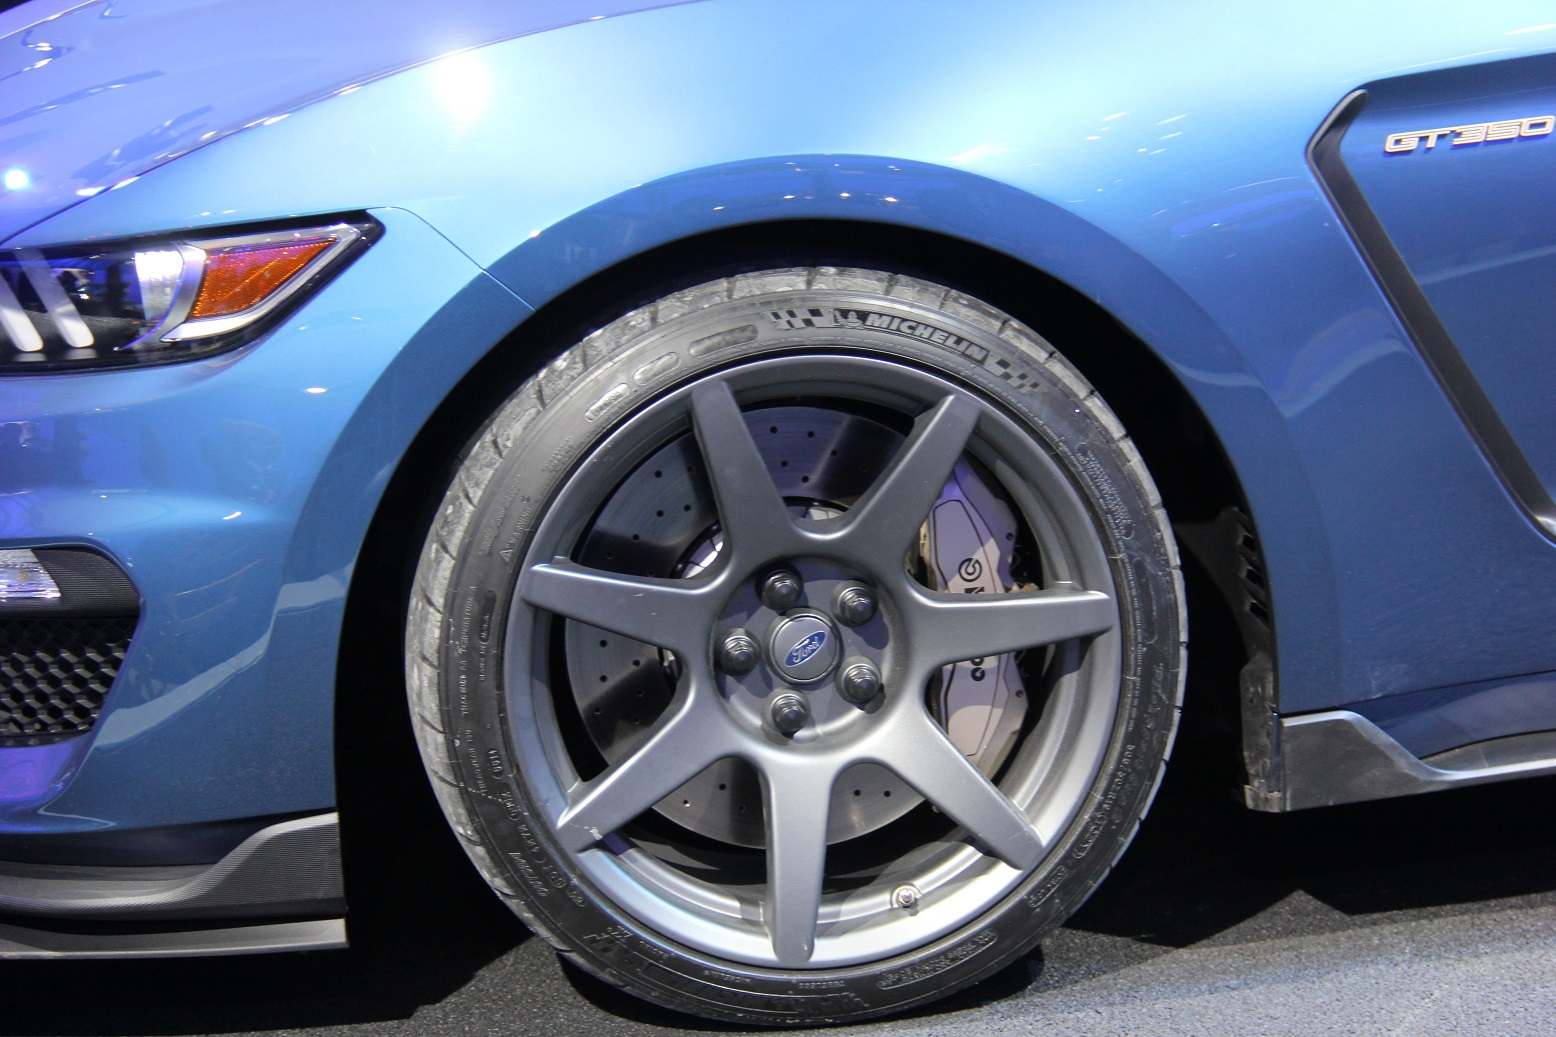 2016 Ford Mustang Shelby GT350R Velg and Wheel